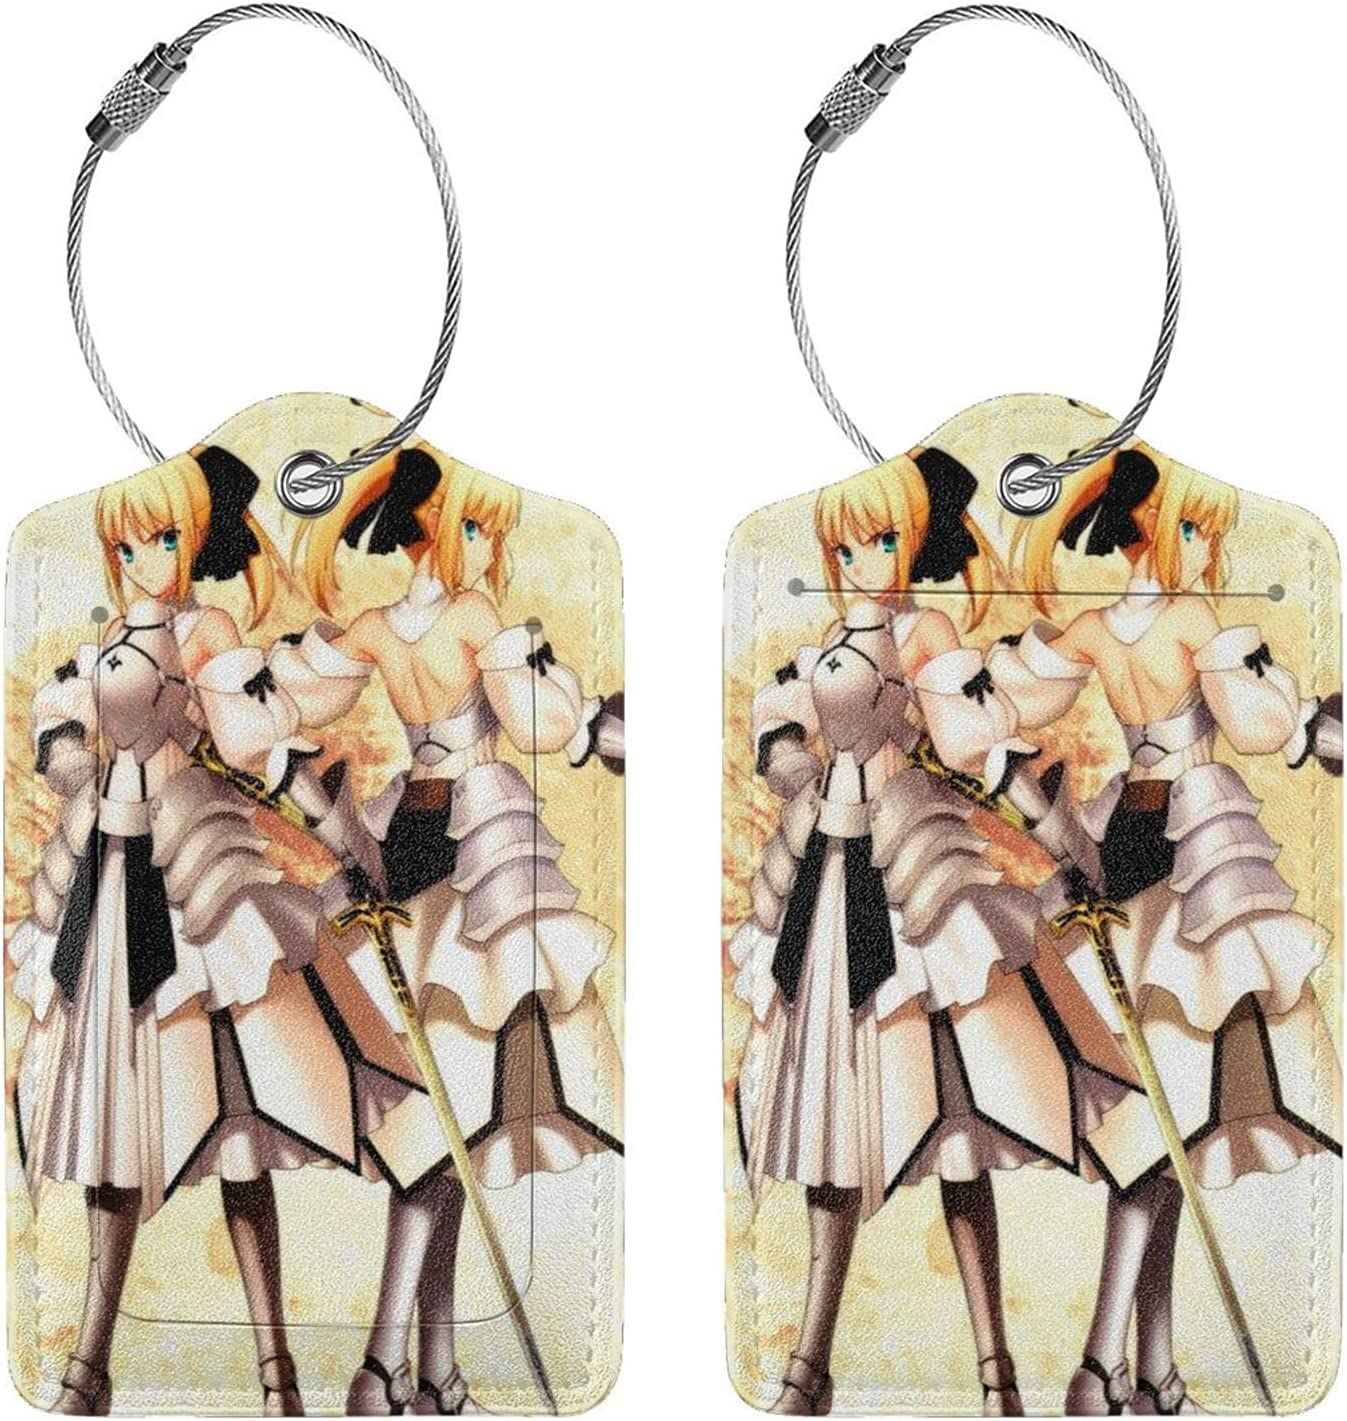 Fate Zero Saber Anime Selling Under blast sales Luggage Lightweight Tags Tag Suitcase Trav